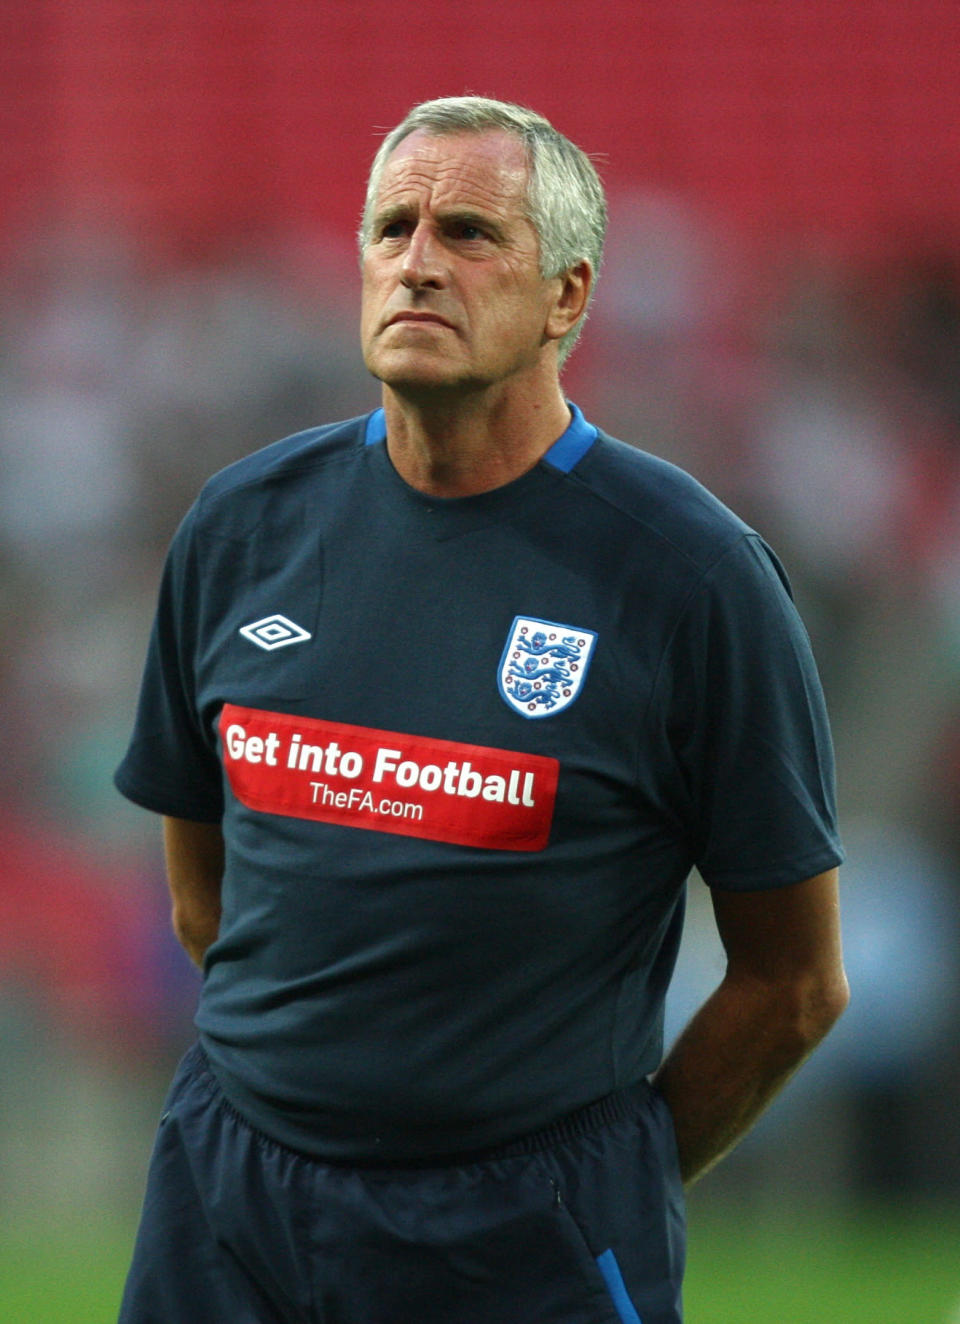 FILE - In this Sept. 3, 2010 file photo, England goalkeeper coach Ray Clemence is photographed. Ray Clemence, the former Liverpool, Tottenham and England goalkeeper, has died. He was 72. The Football Association confirmed the news Sunday, Nov. 15, 2020 without giving a cause of death. (David Davies/PA via AP, File)